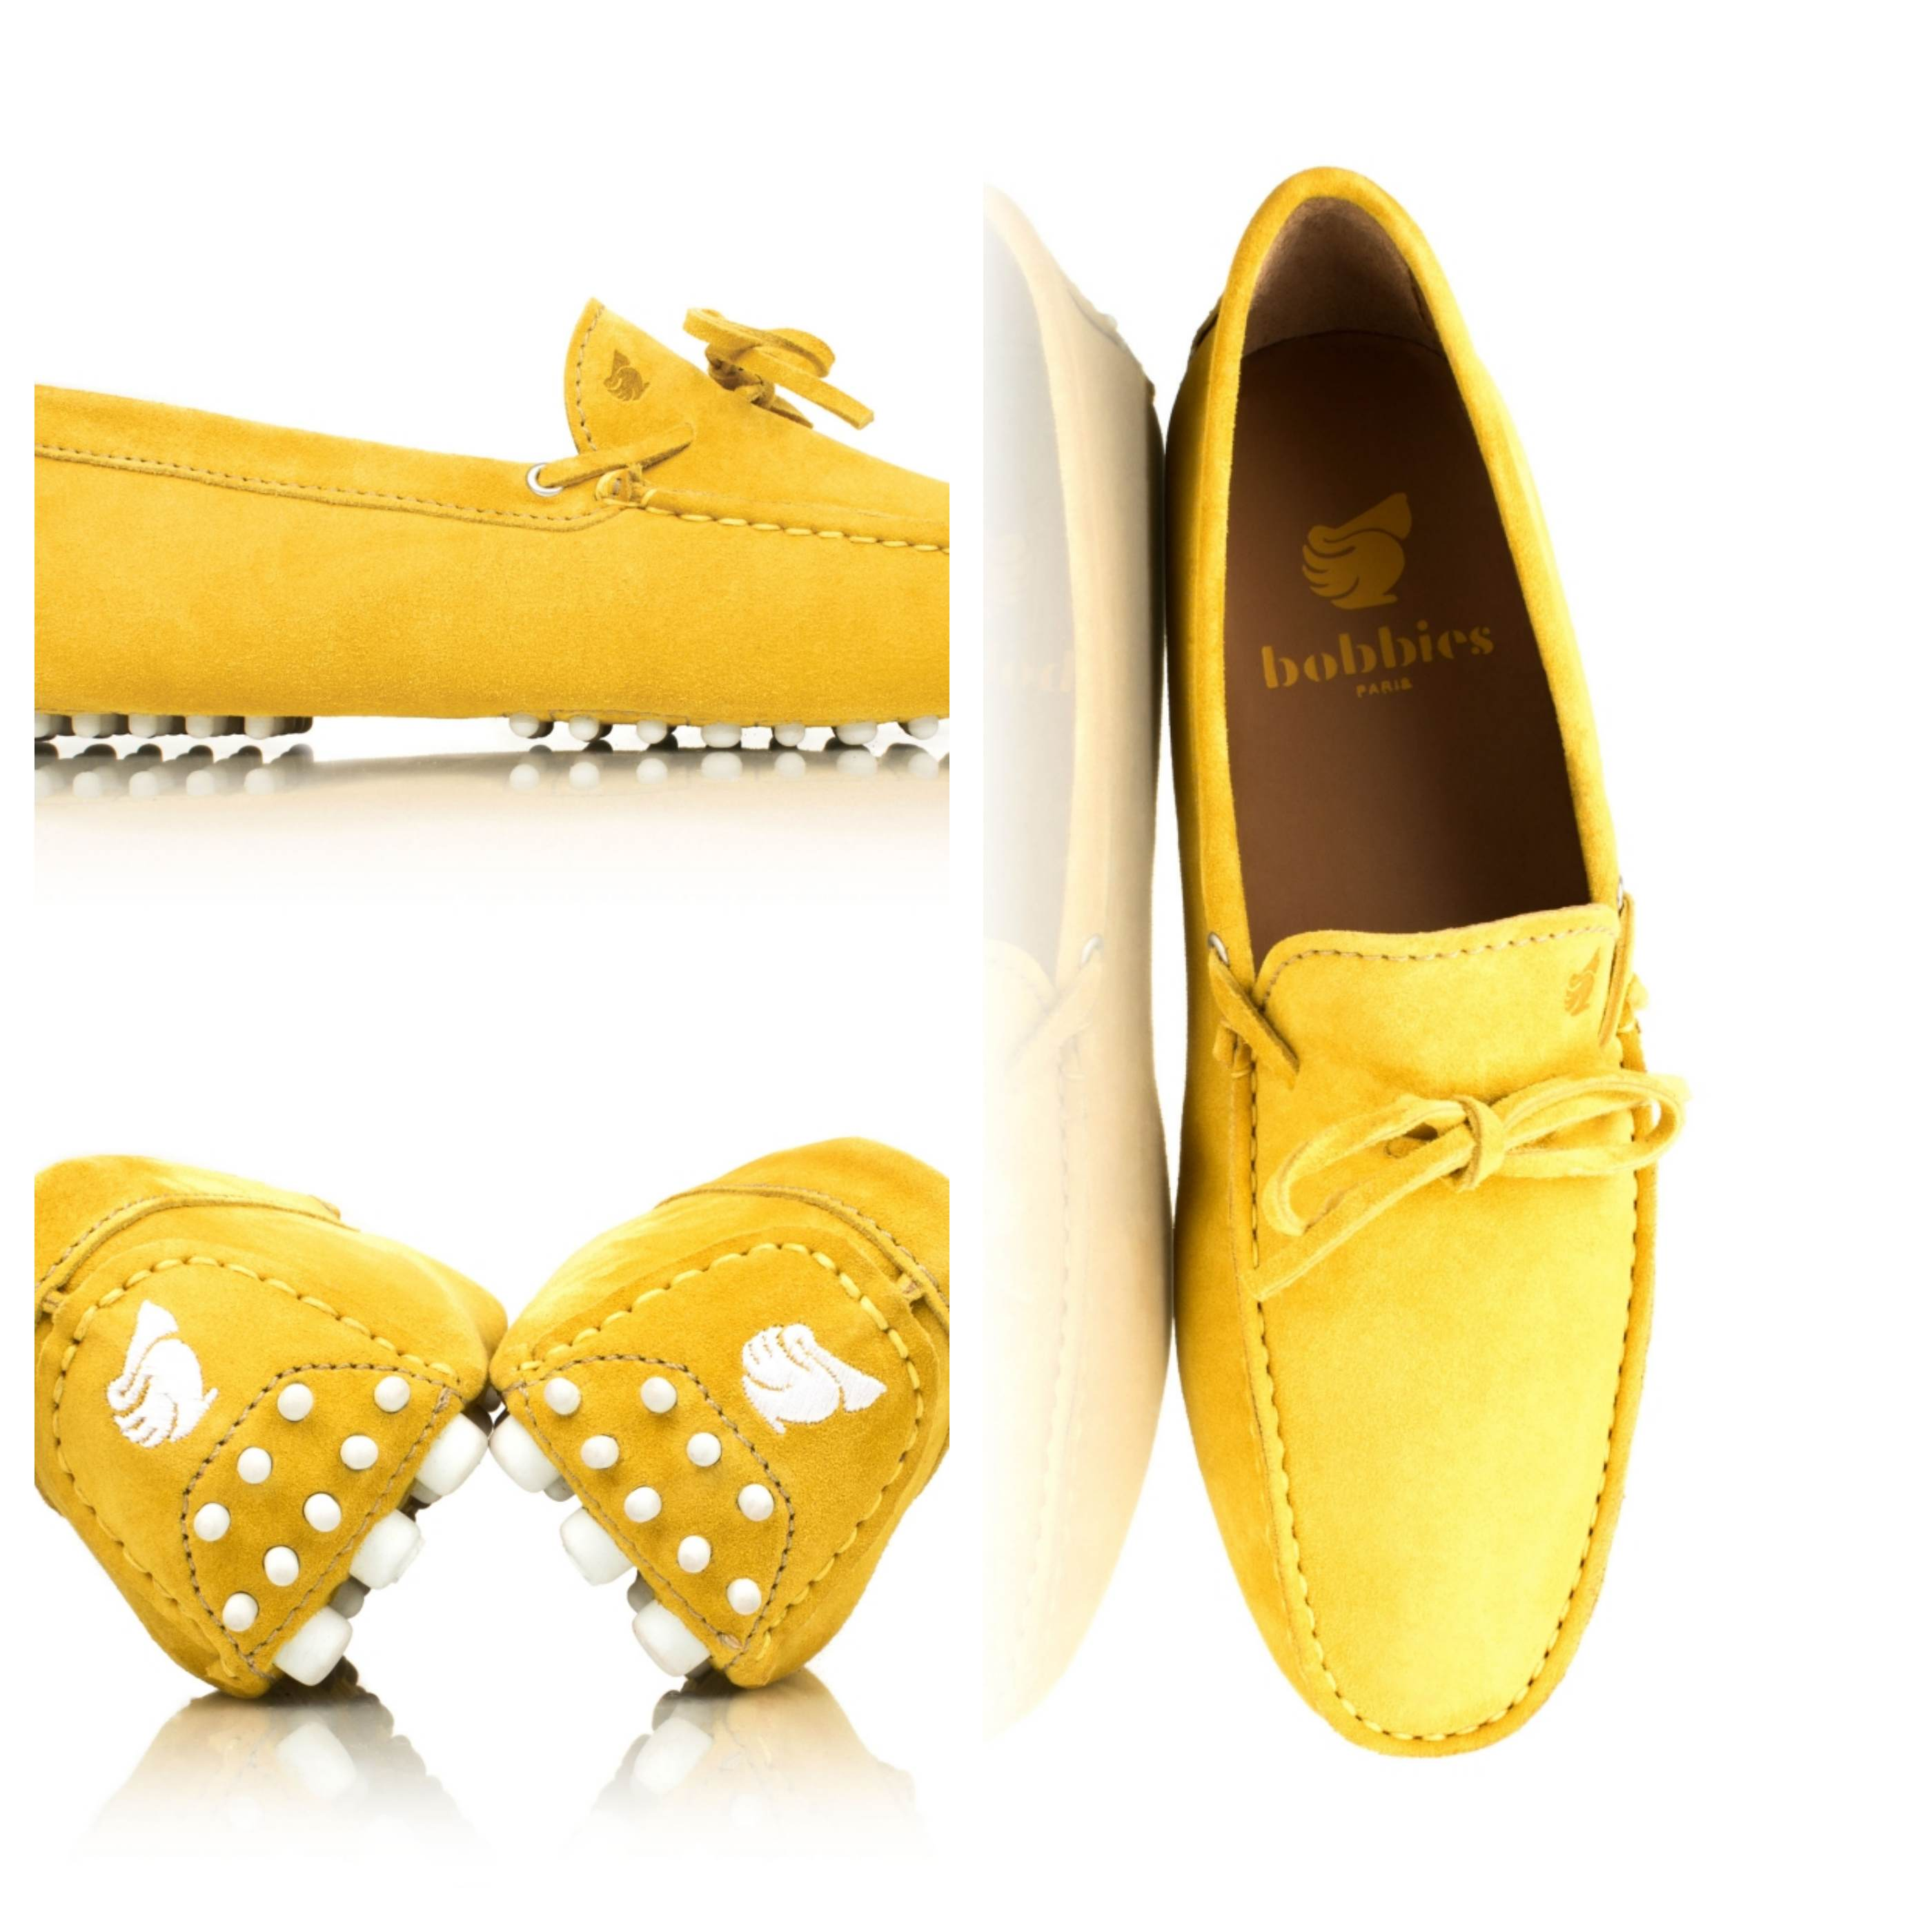 mocassin-jaune-hjorpiment-bobbies-magnifique_Fotor_Collage